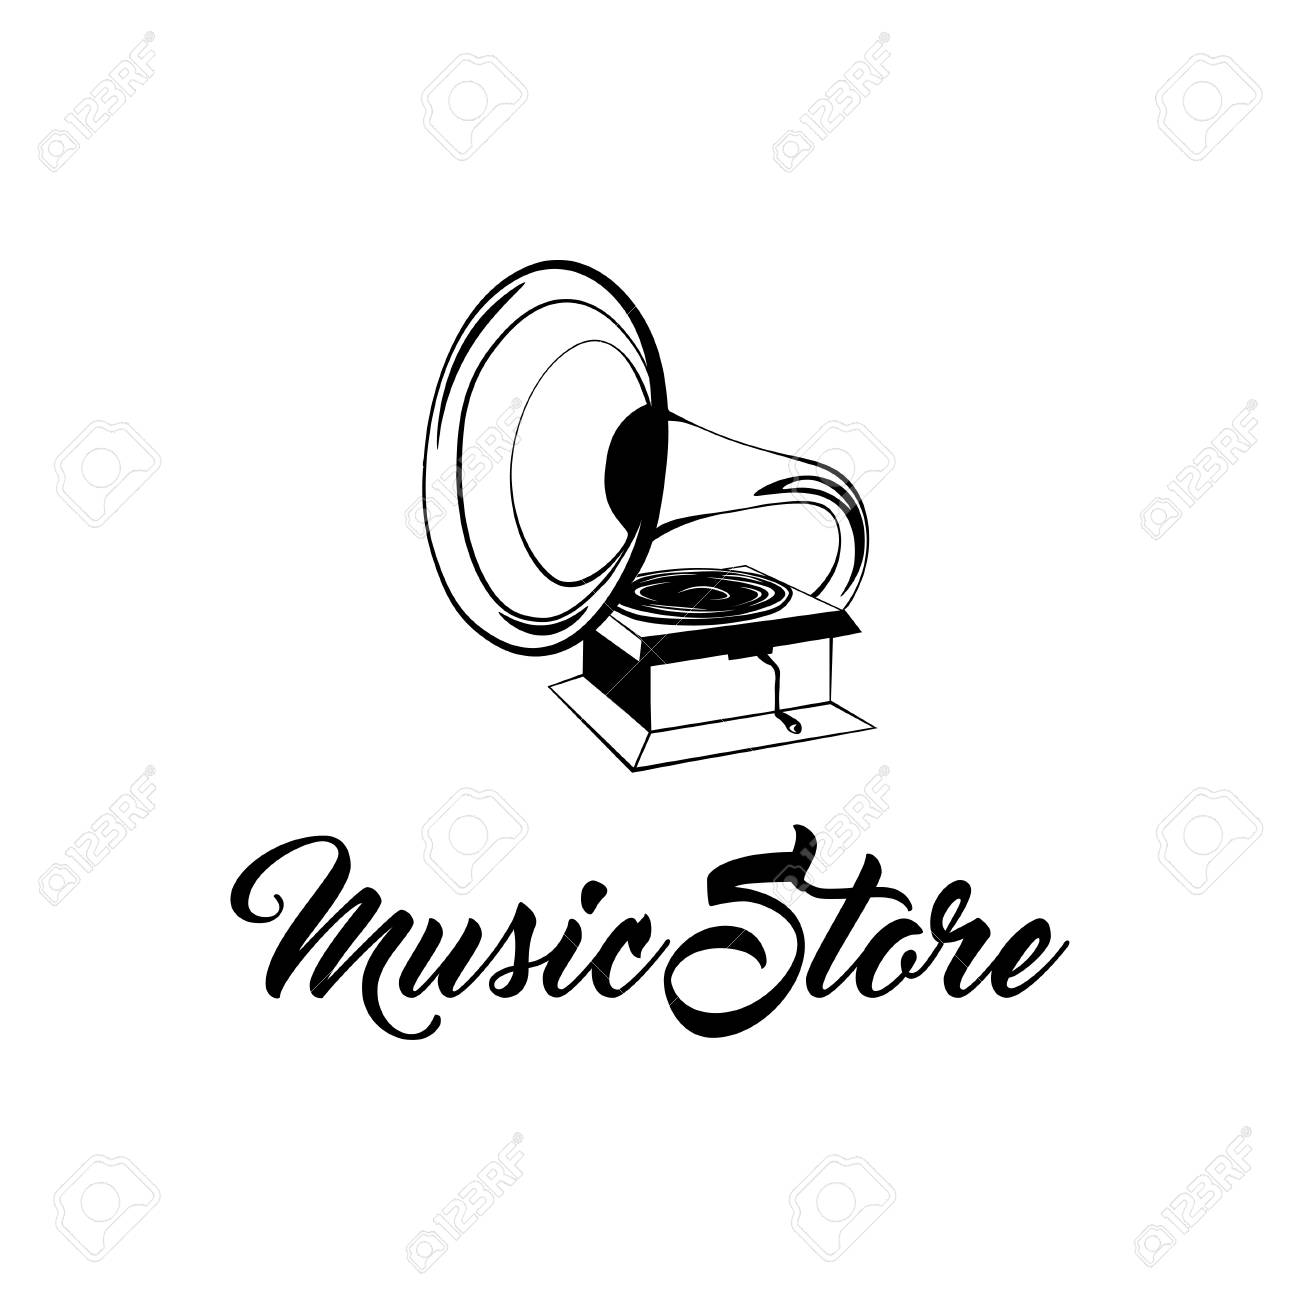 gramophone vintage hand drawing vector illustration music store royalty free cliparts vectors and stock illustration image 97190390 gramophone vintage hand drawing vector illustration music store